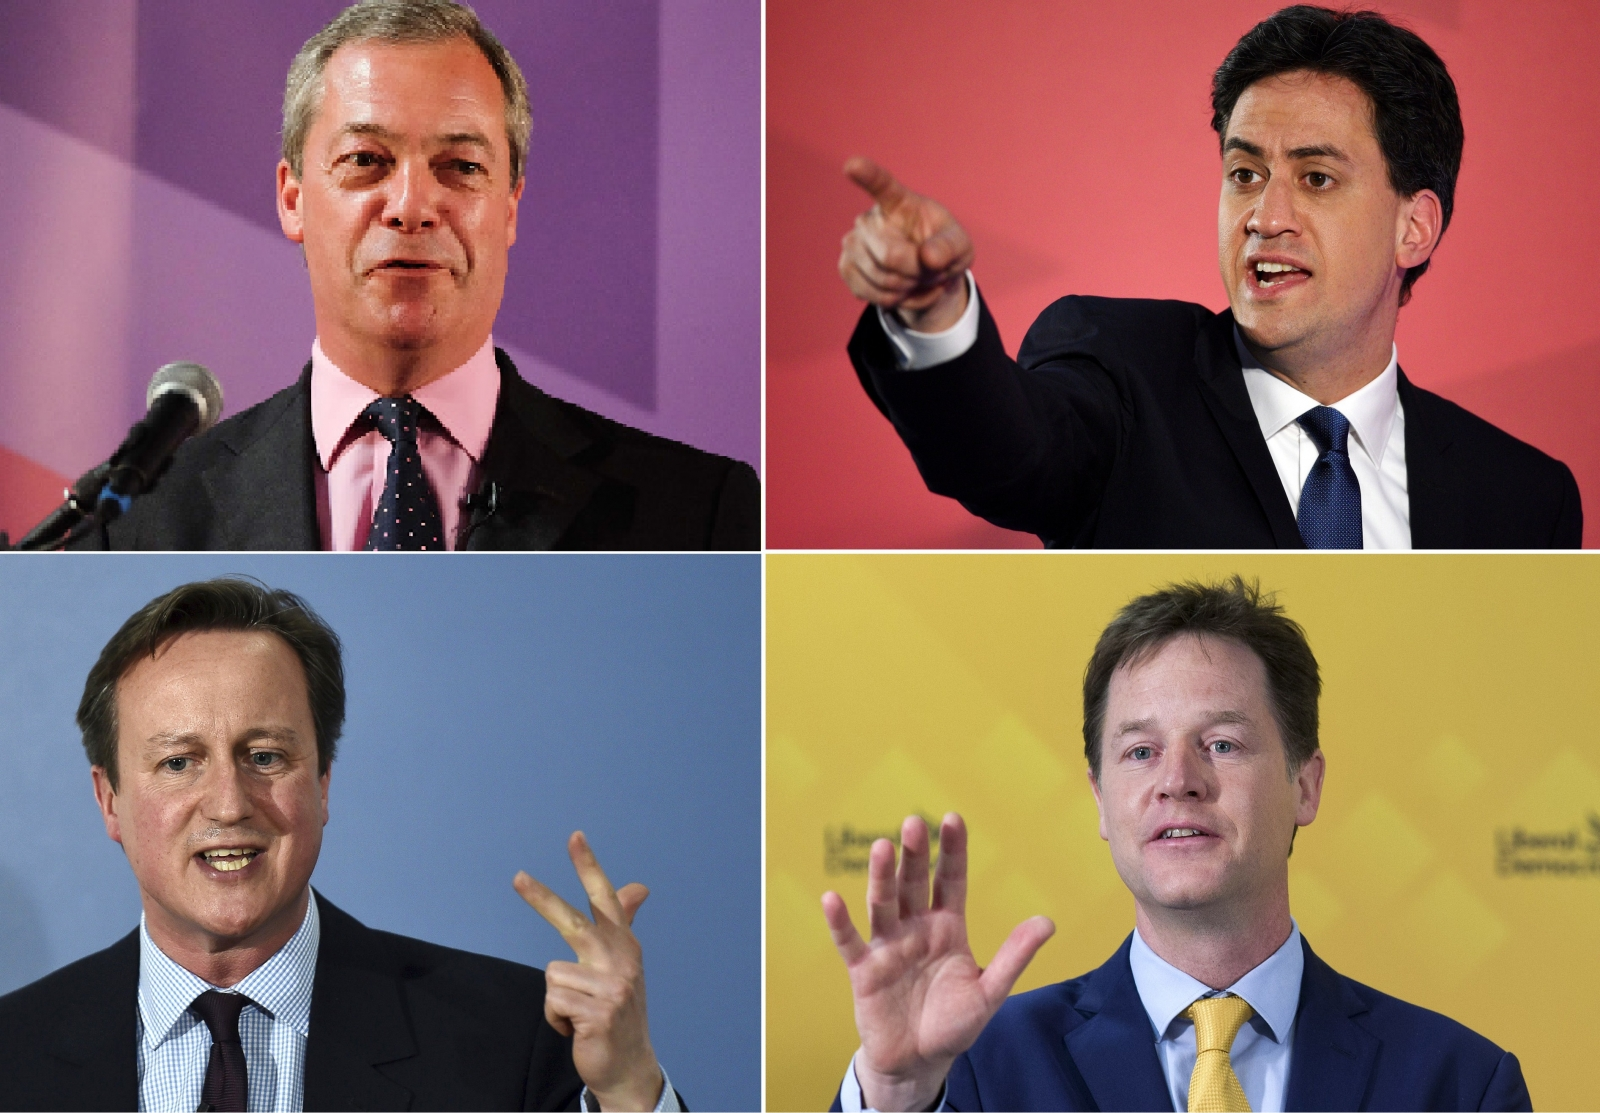 Nigel Farage, Ed Miliband, David Cameron, NickClegg